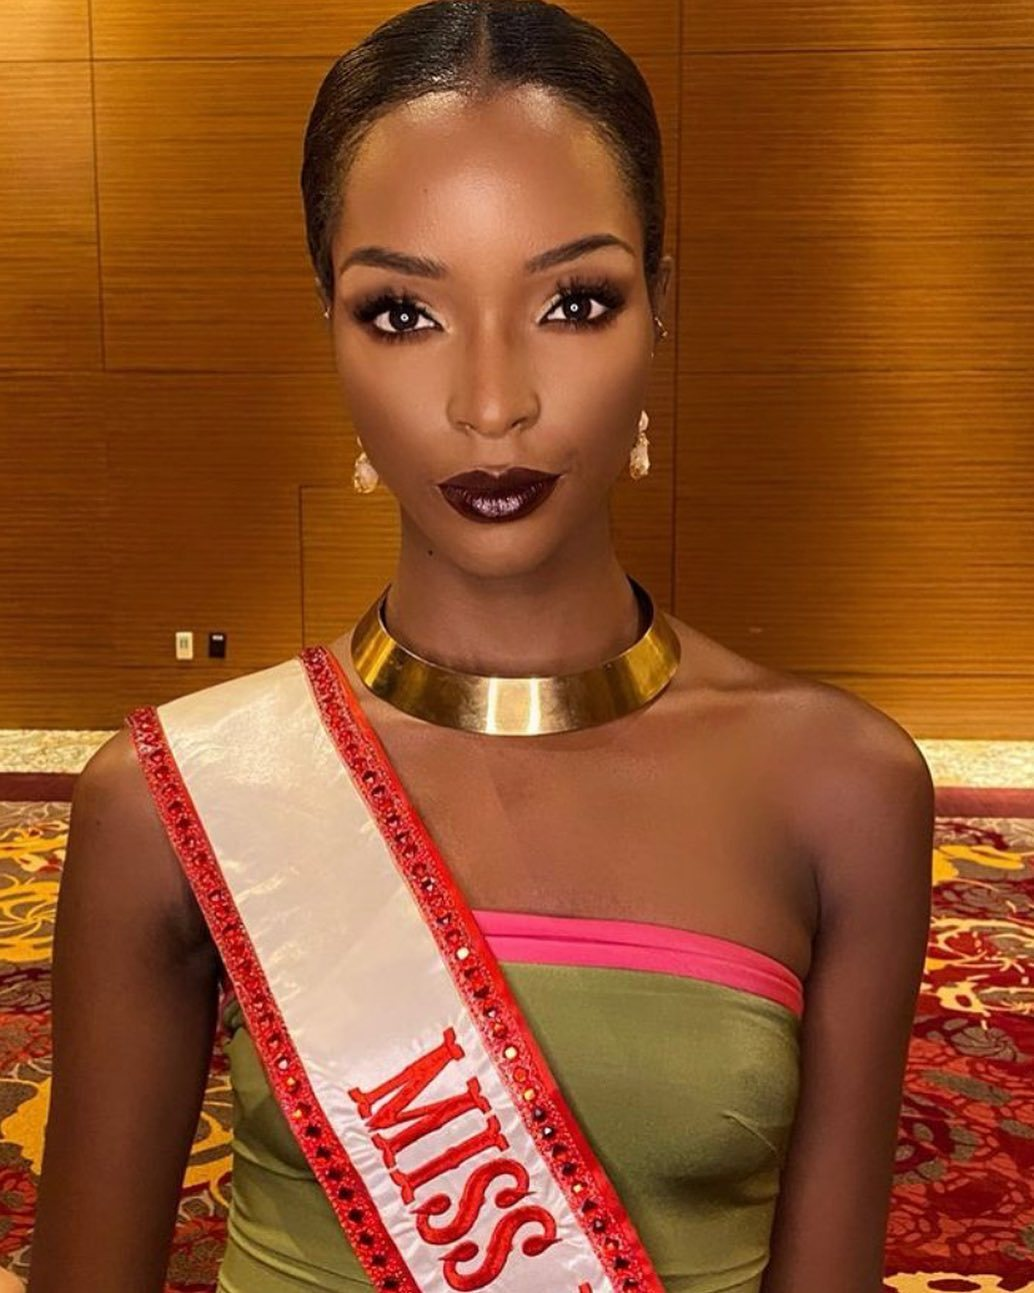 DAPHNE - Miss Universe 2021: The class is the face